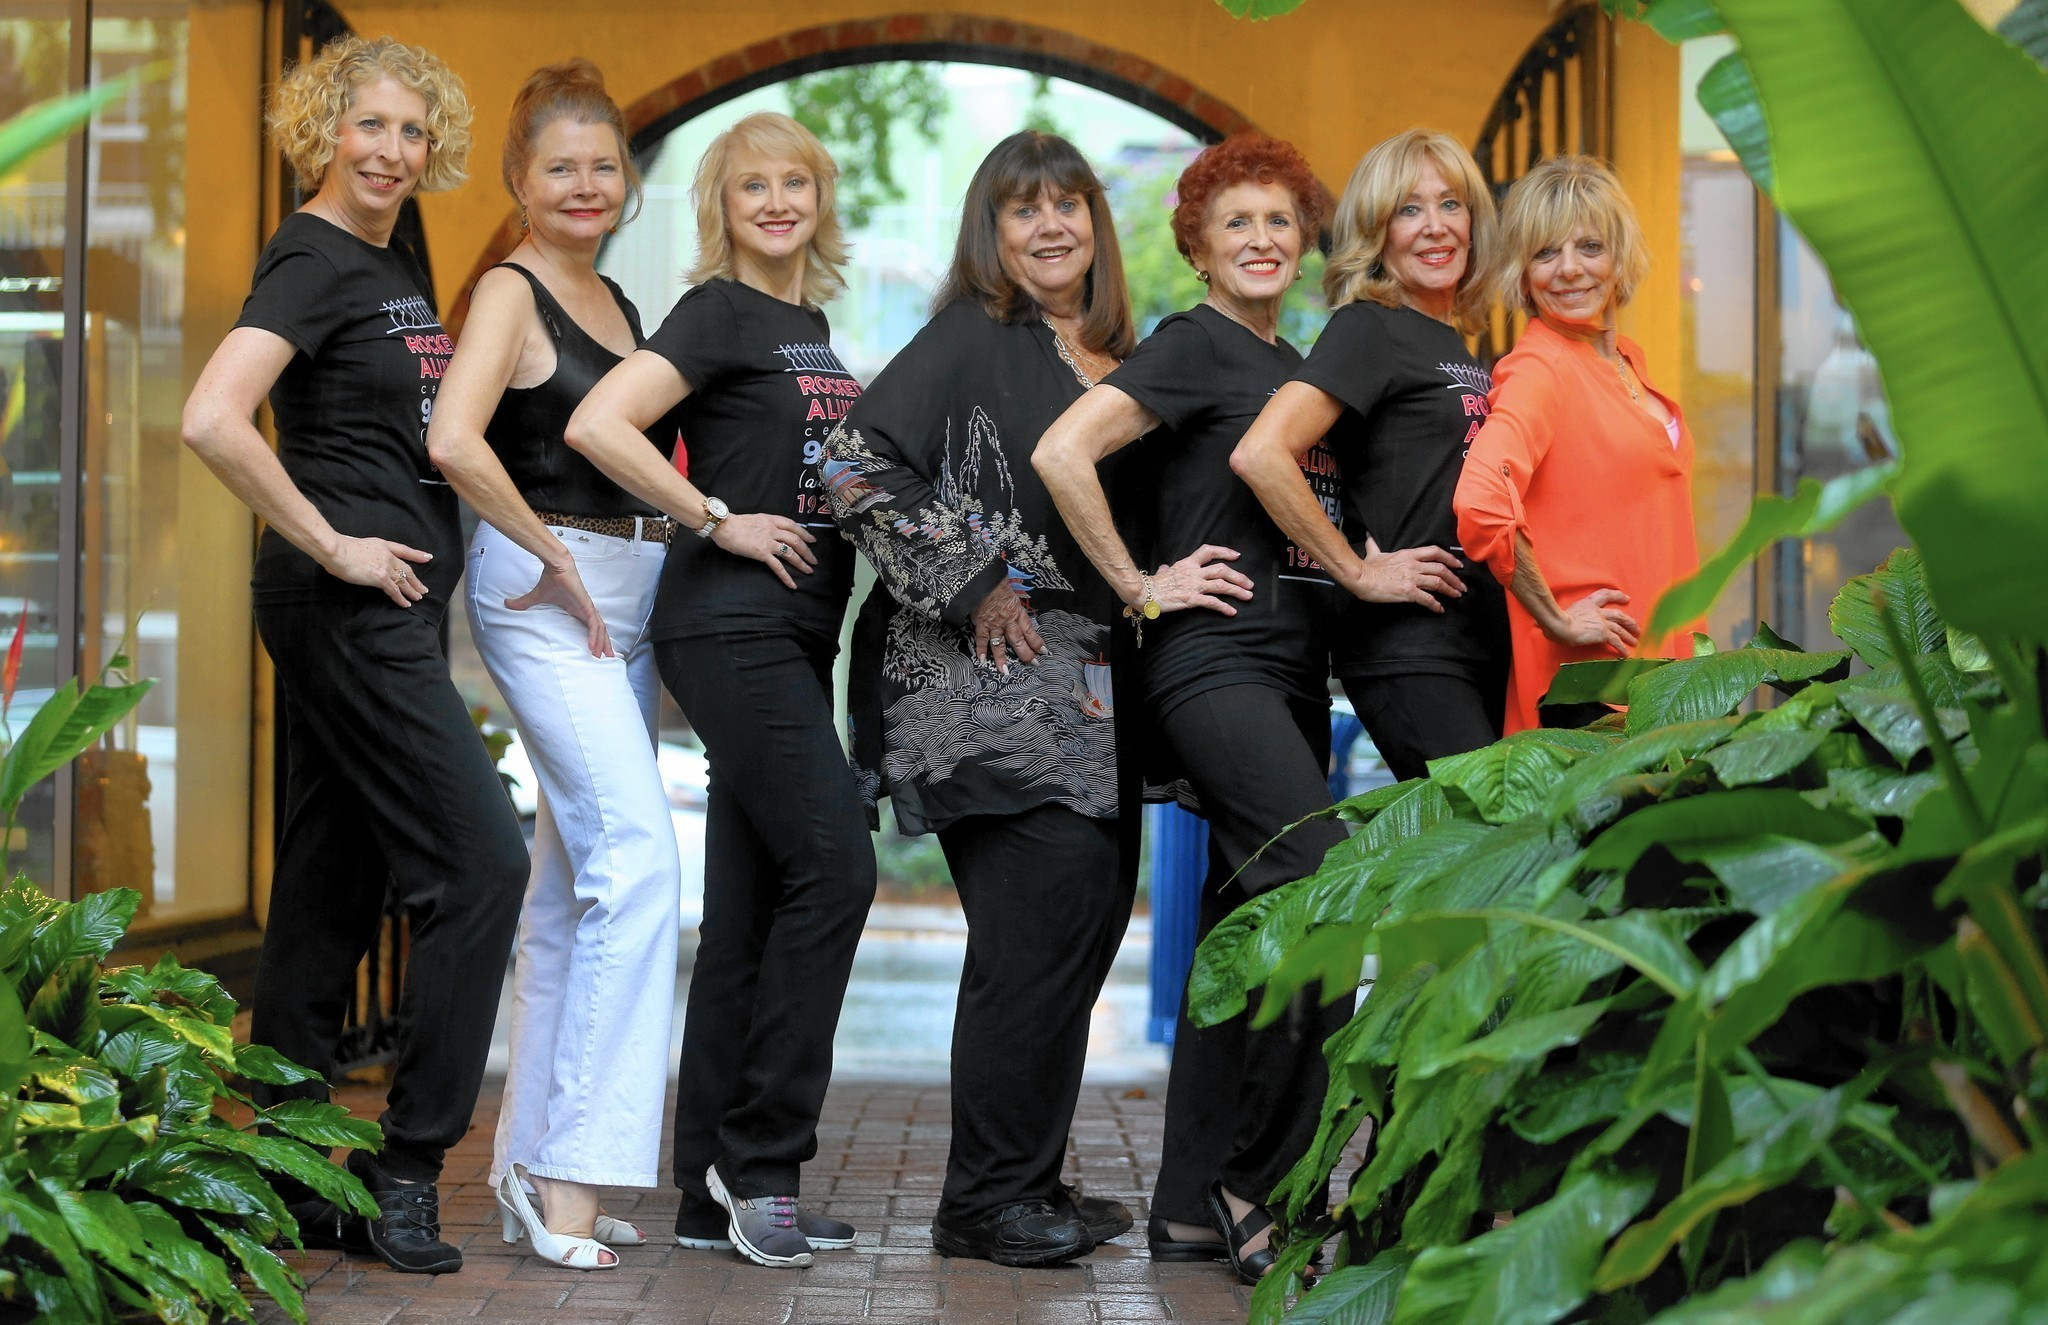 Rockettes In South Florida: Still Kicking After All These Years   Sun  Sentinel